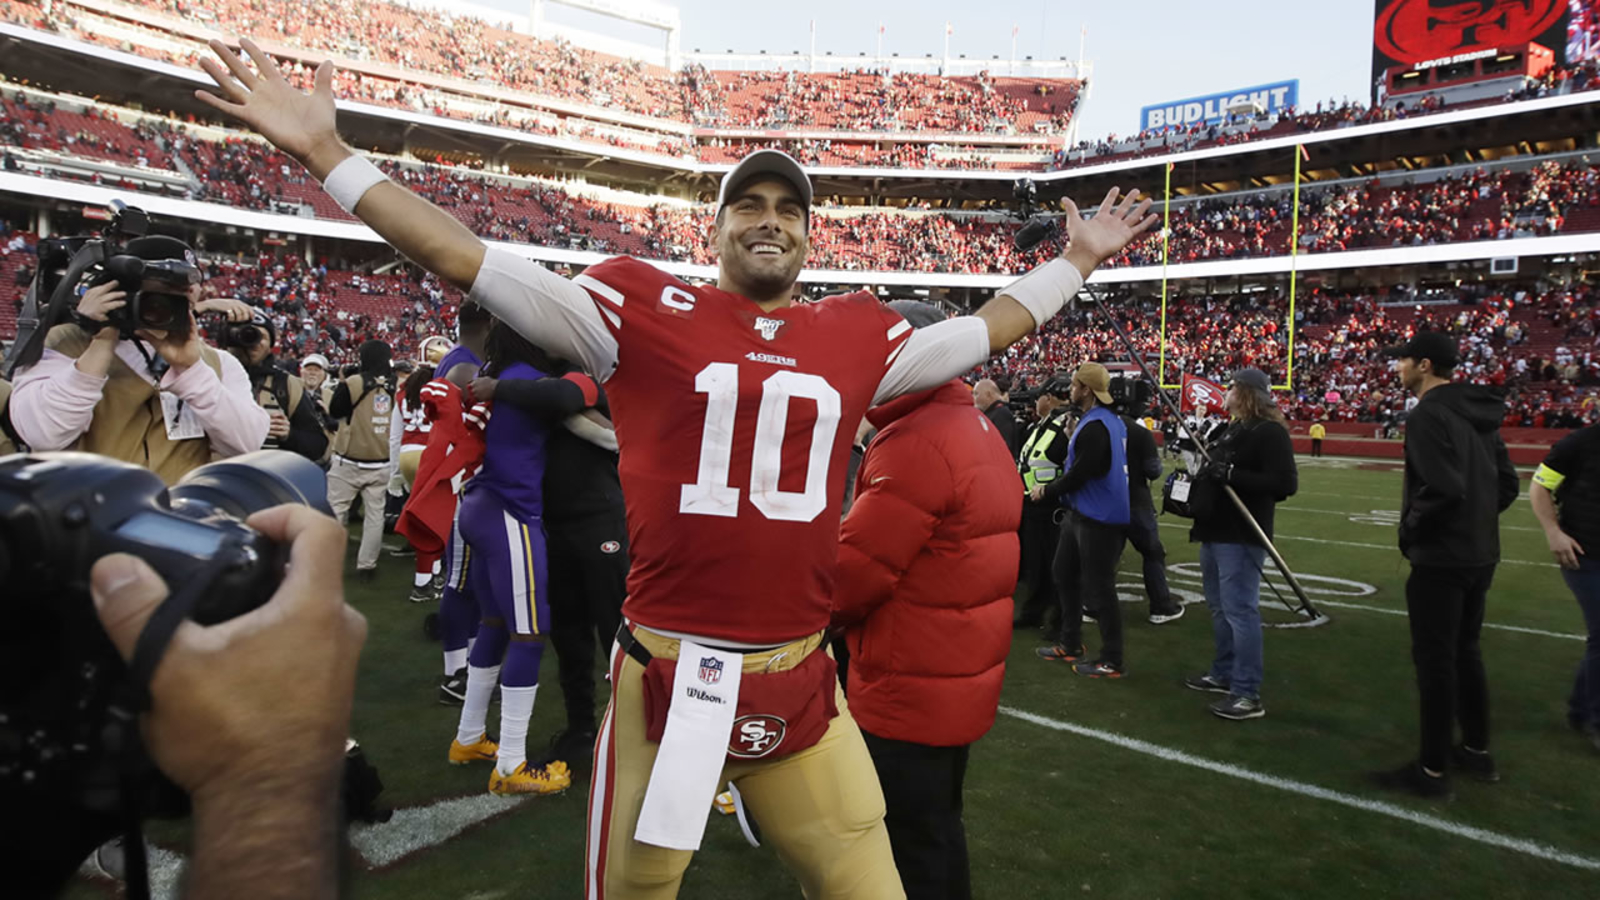 49ers vs Packers: Niners sell out first NFC Championship Game at Levi's Stadium